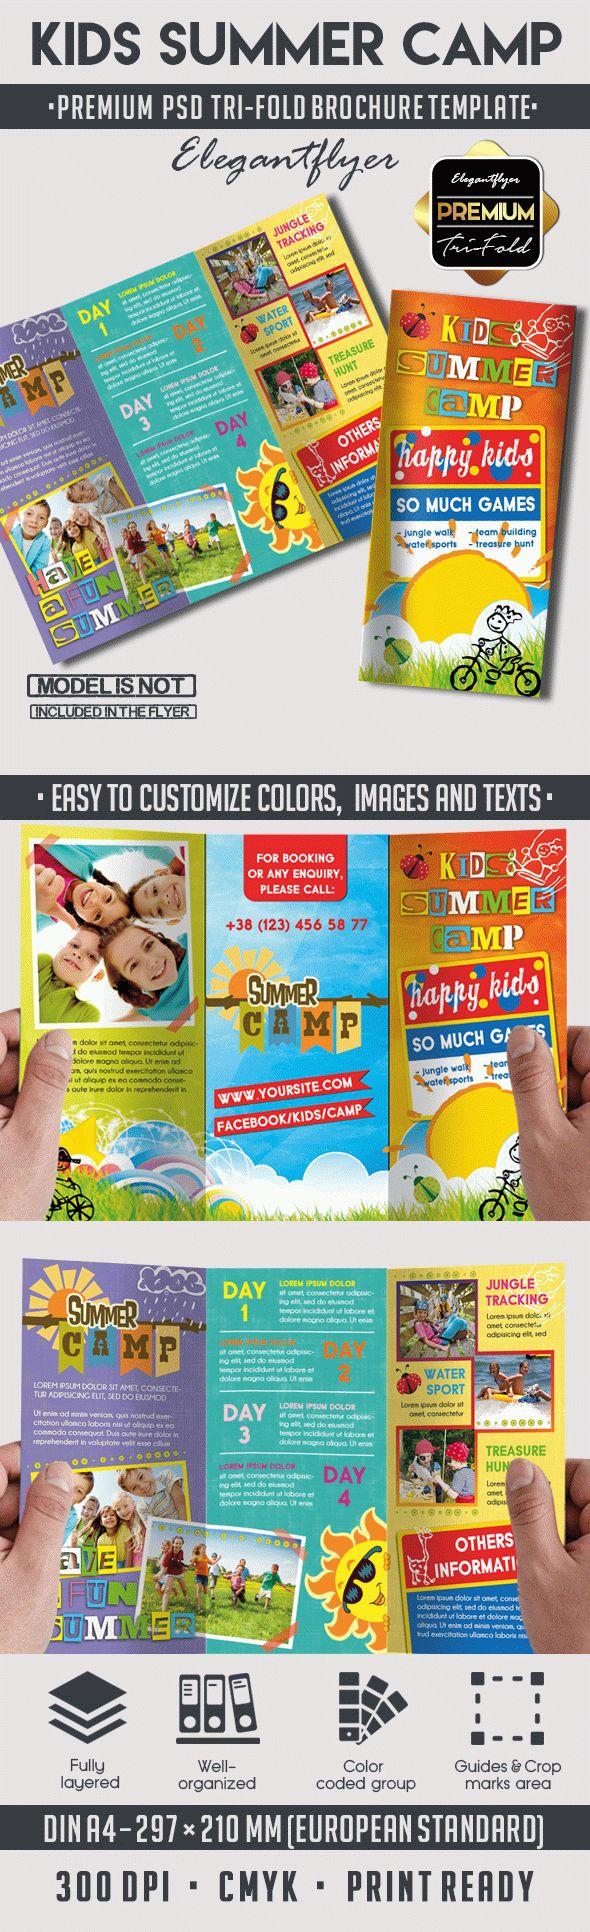 Kids Summer Camp Premium TriFold PSD Brochure Template By - Summer camp brochure template